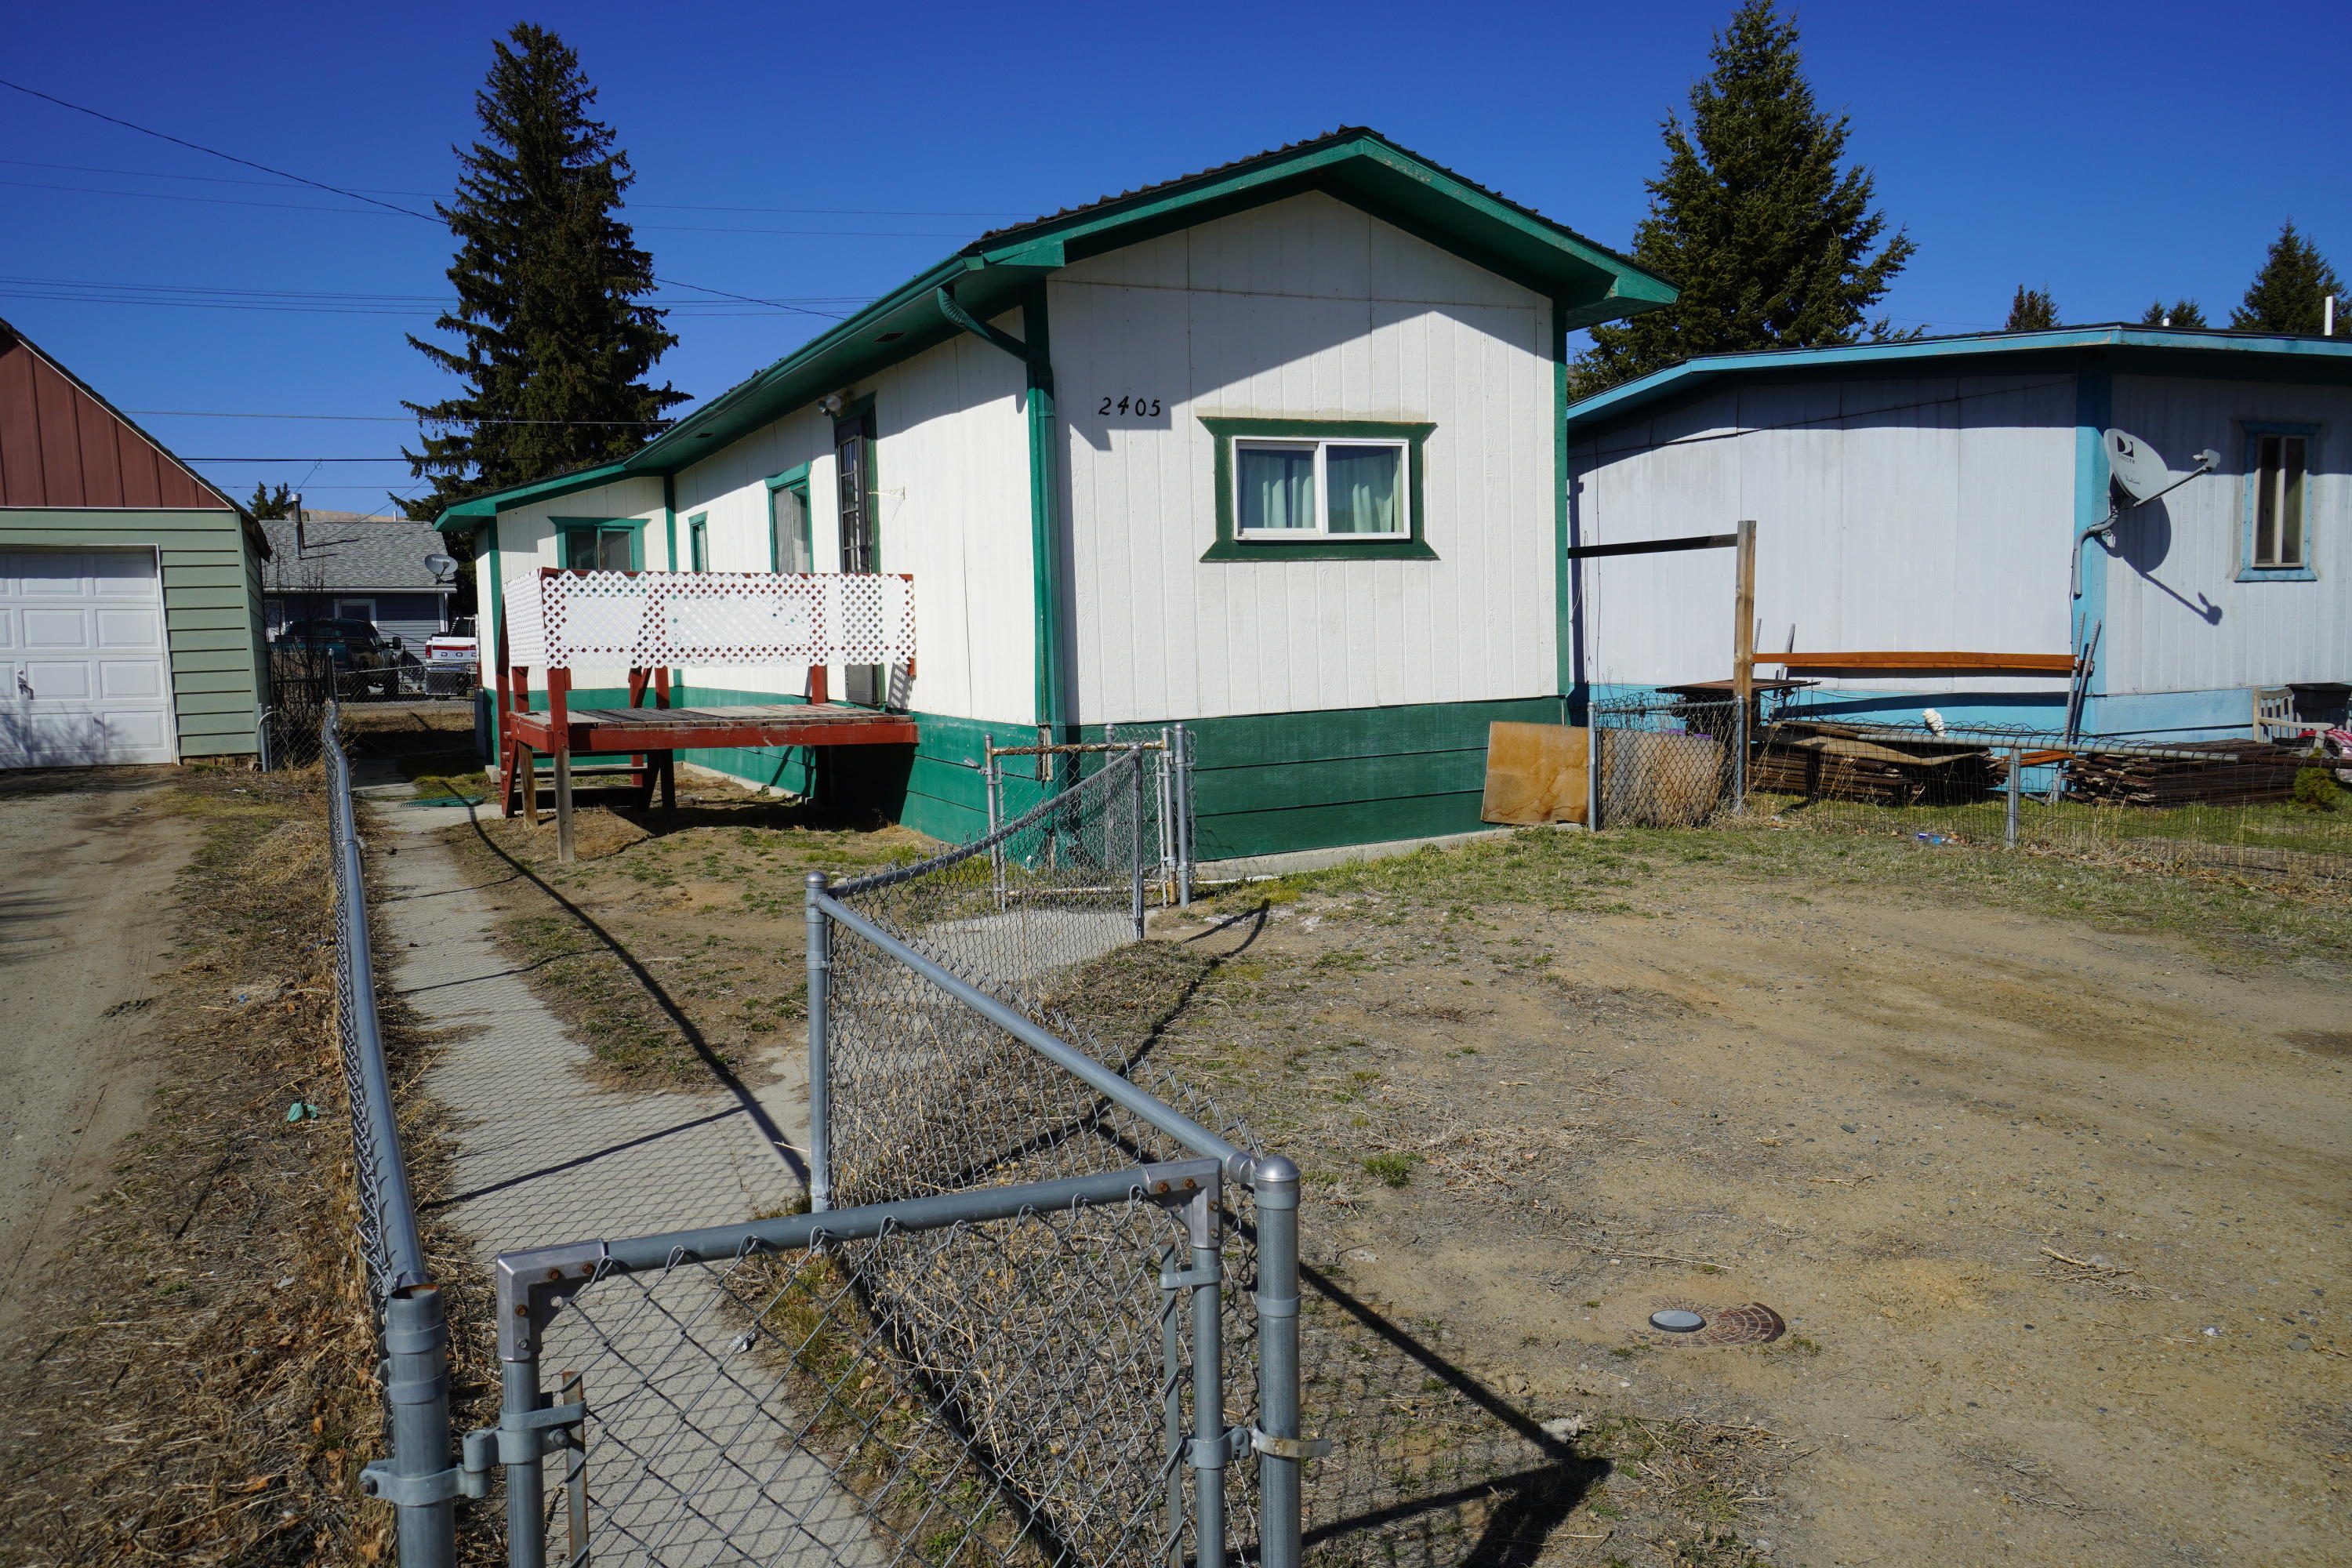 Nice older mobile home on concrete foundation for sale.  There are 2 bedrooms and 1 bathroom, and a large open floor plan with the kitchen, living room and dining area all together.  There is a nice attached deck and a small addition for laundry as well.  A fenced yard is a plus as well.  This unit has a great rental history as well, bringing in $700+/monthly on last lease.  Call Ben Cannon at 406-924-9853, or your real estate professional.Seller is a licensed real estate professional in the state of Montana.